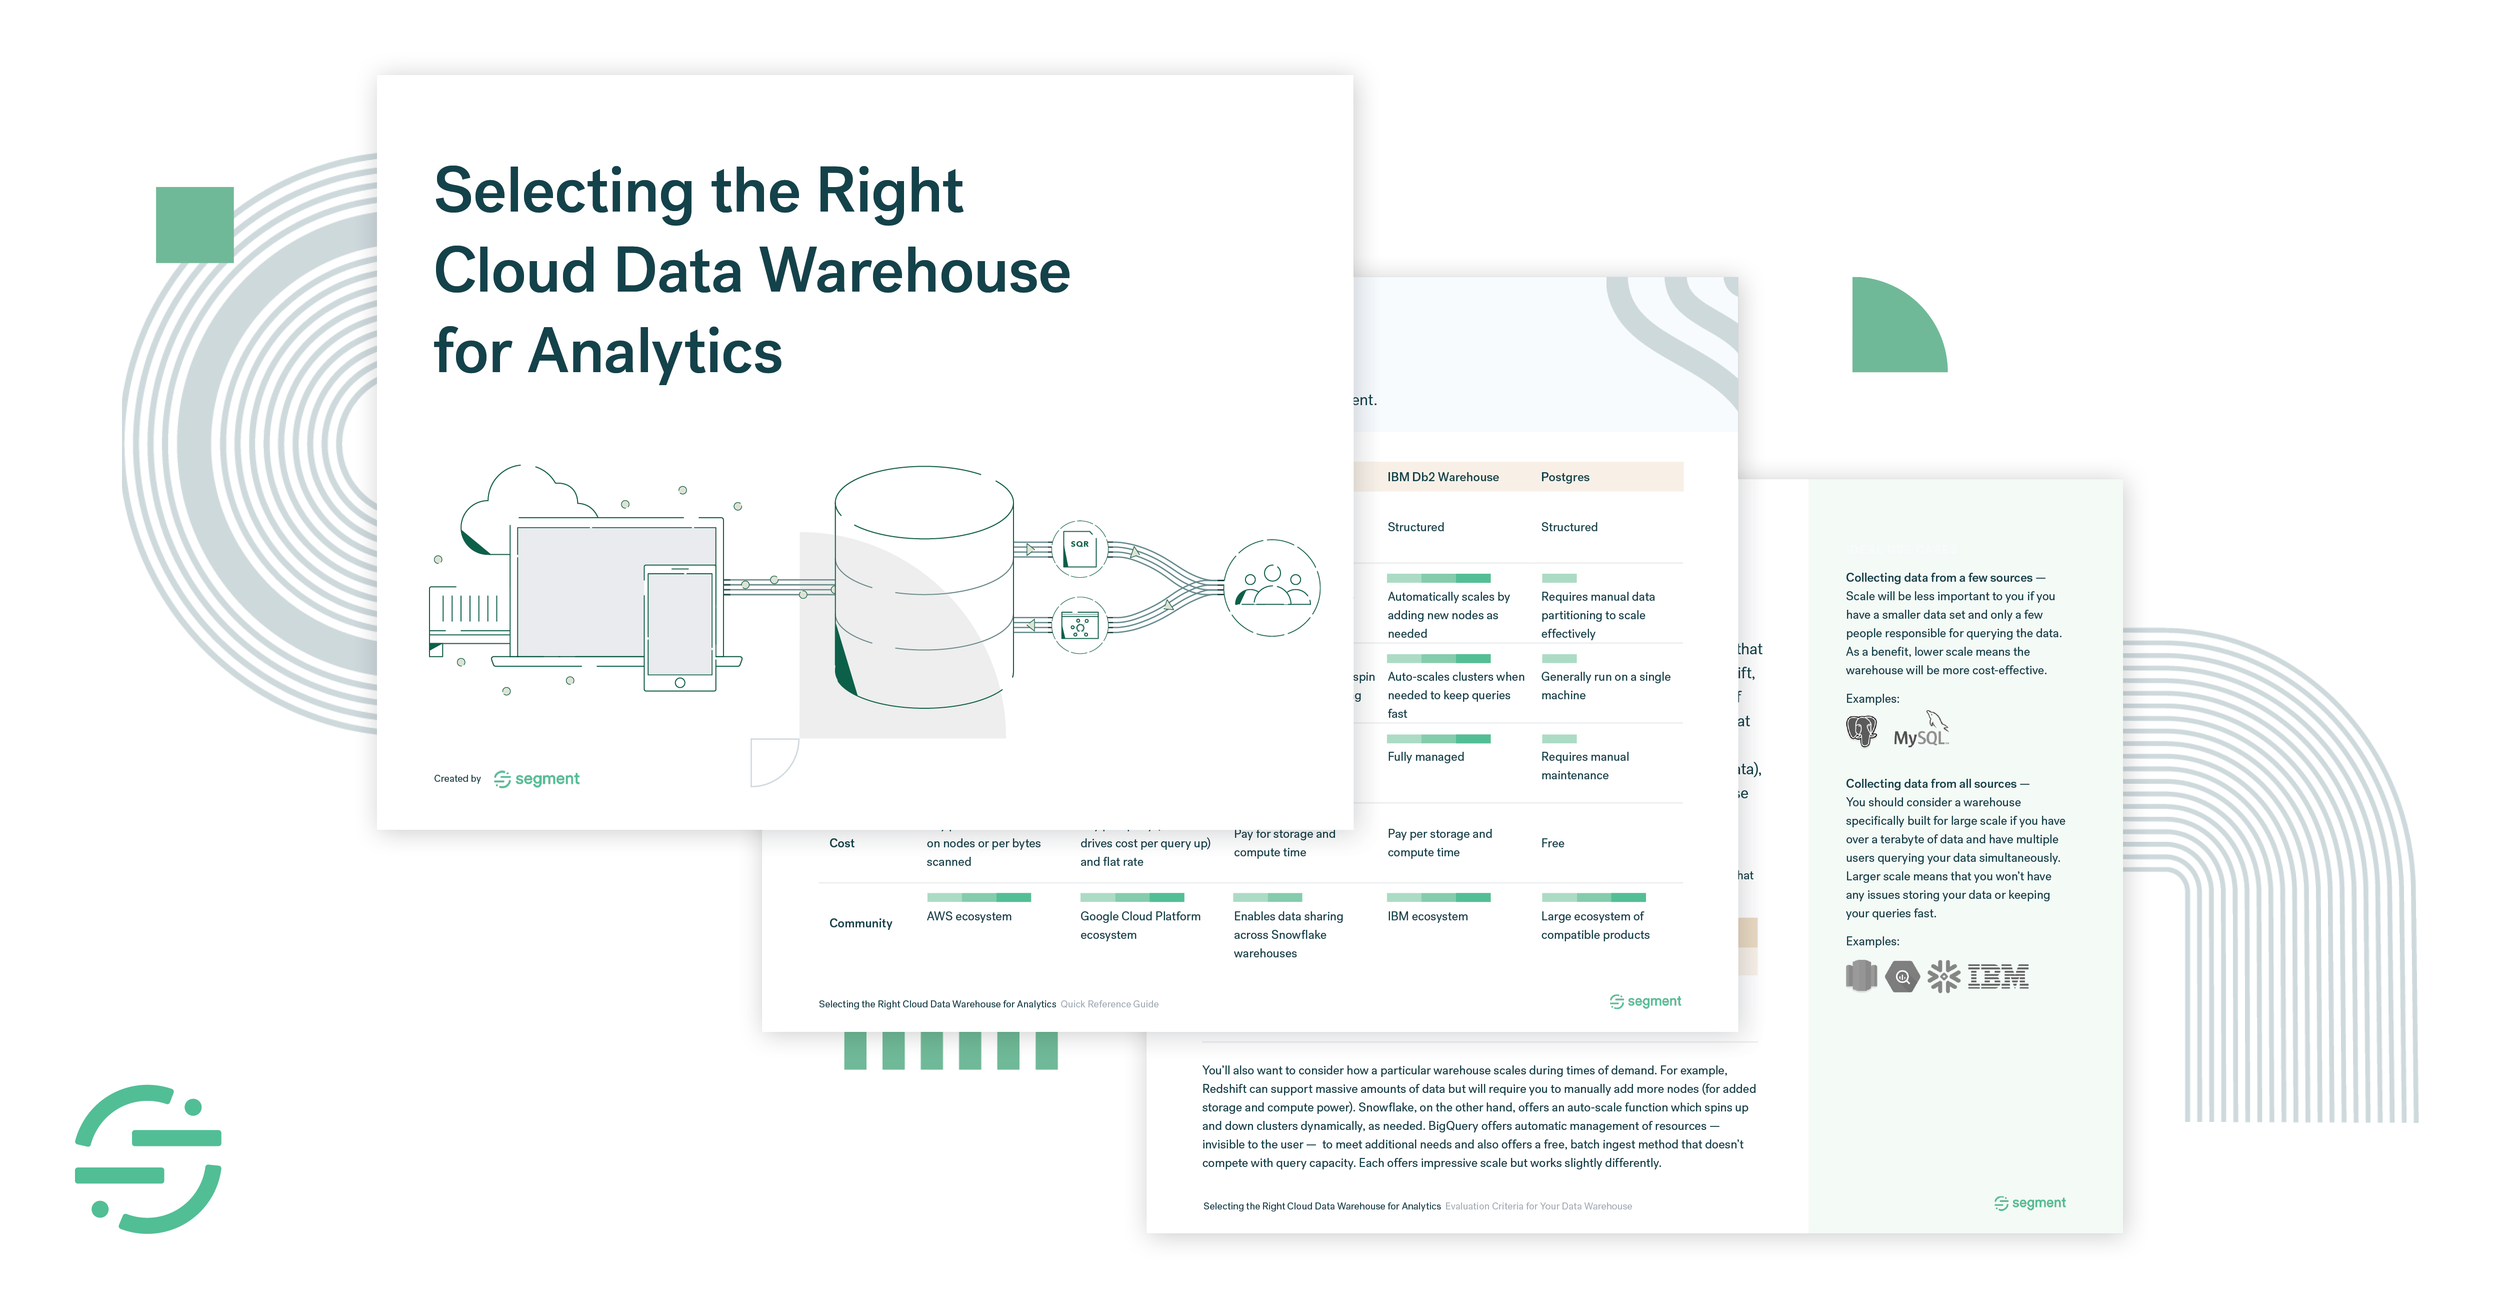 190627_SelectingTheRightDataWarehouse_Ads_1200x628_v1.png